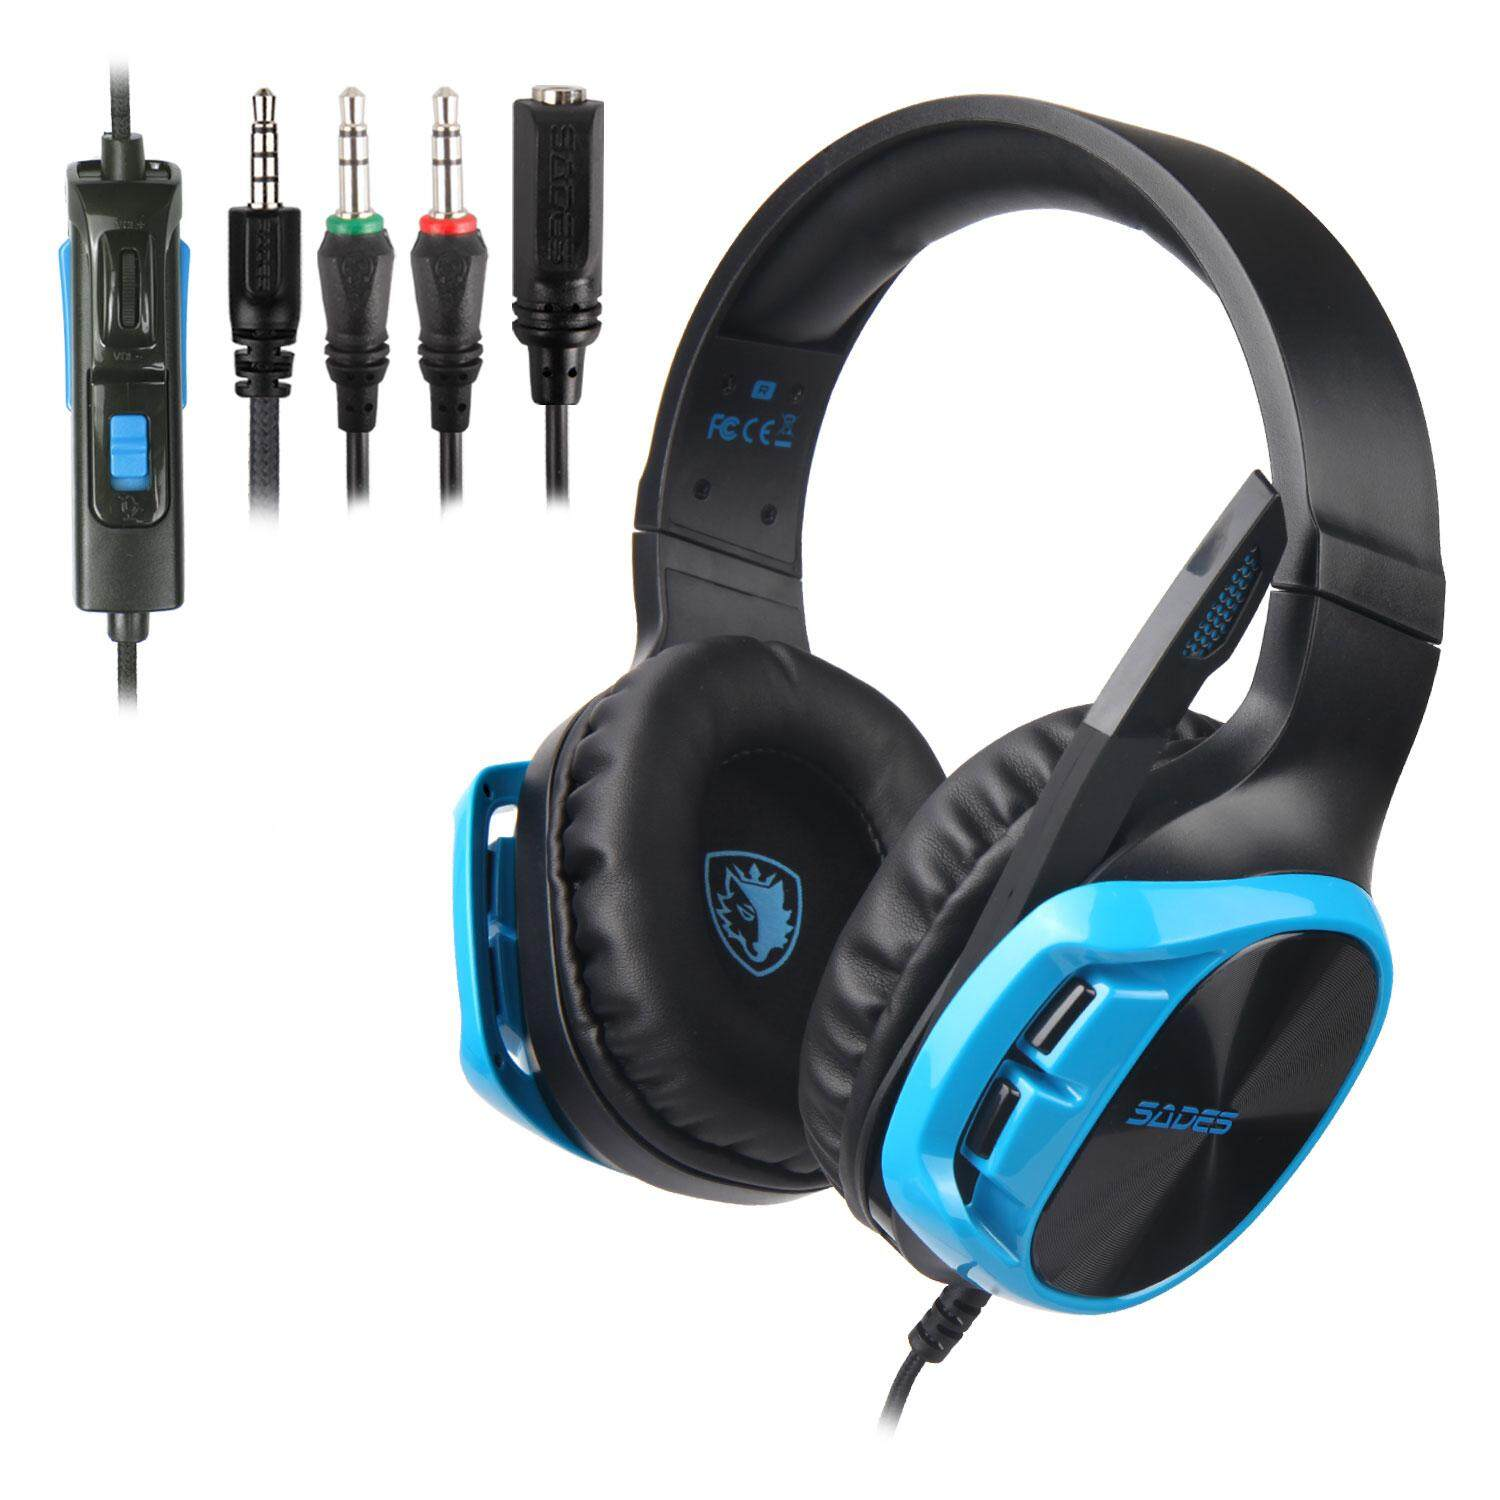 SADES Asli R17 PS4 Headset Game PC Stereo Gamer Alat Bas Headphone Earphone dengan Mikrofon untuk Ponsel Pintar Baru Xbox One Komputer Tablet Laptop